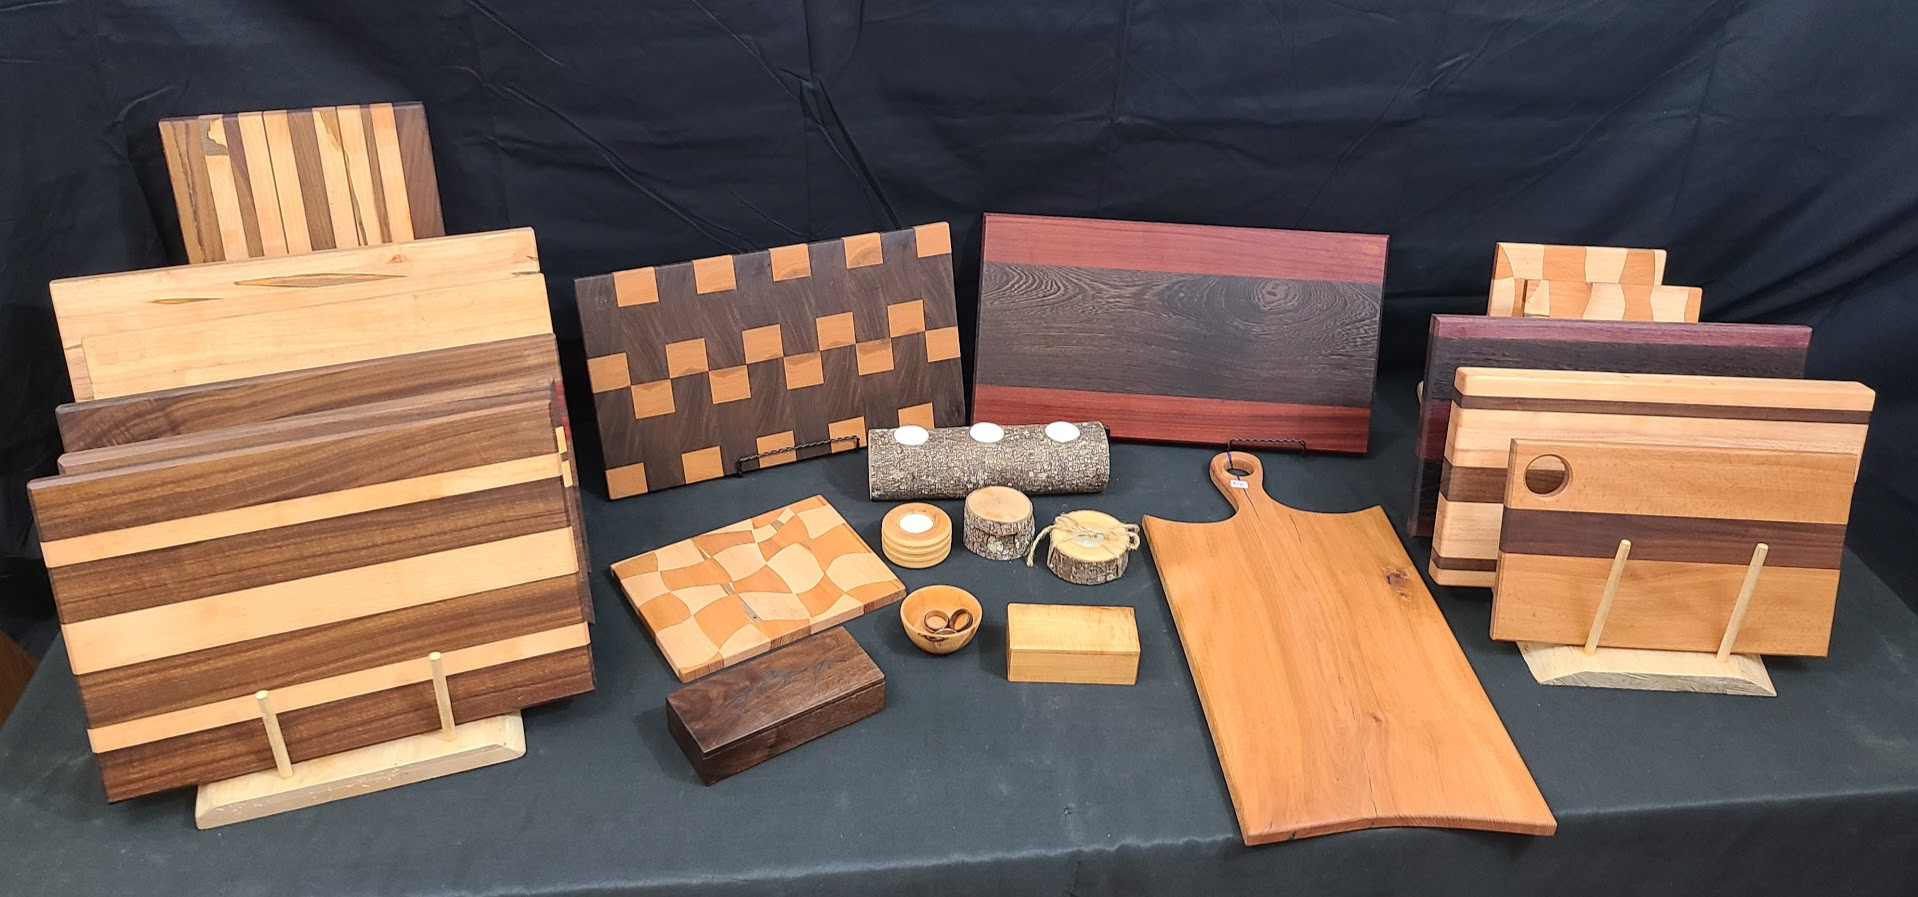 cutting boards and small goods